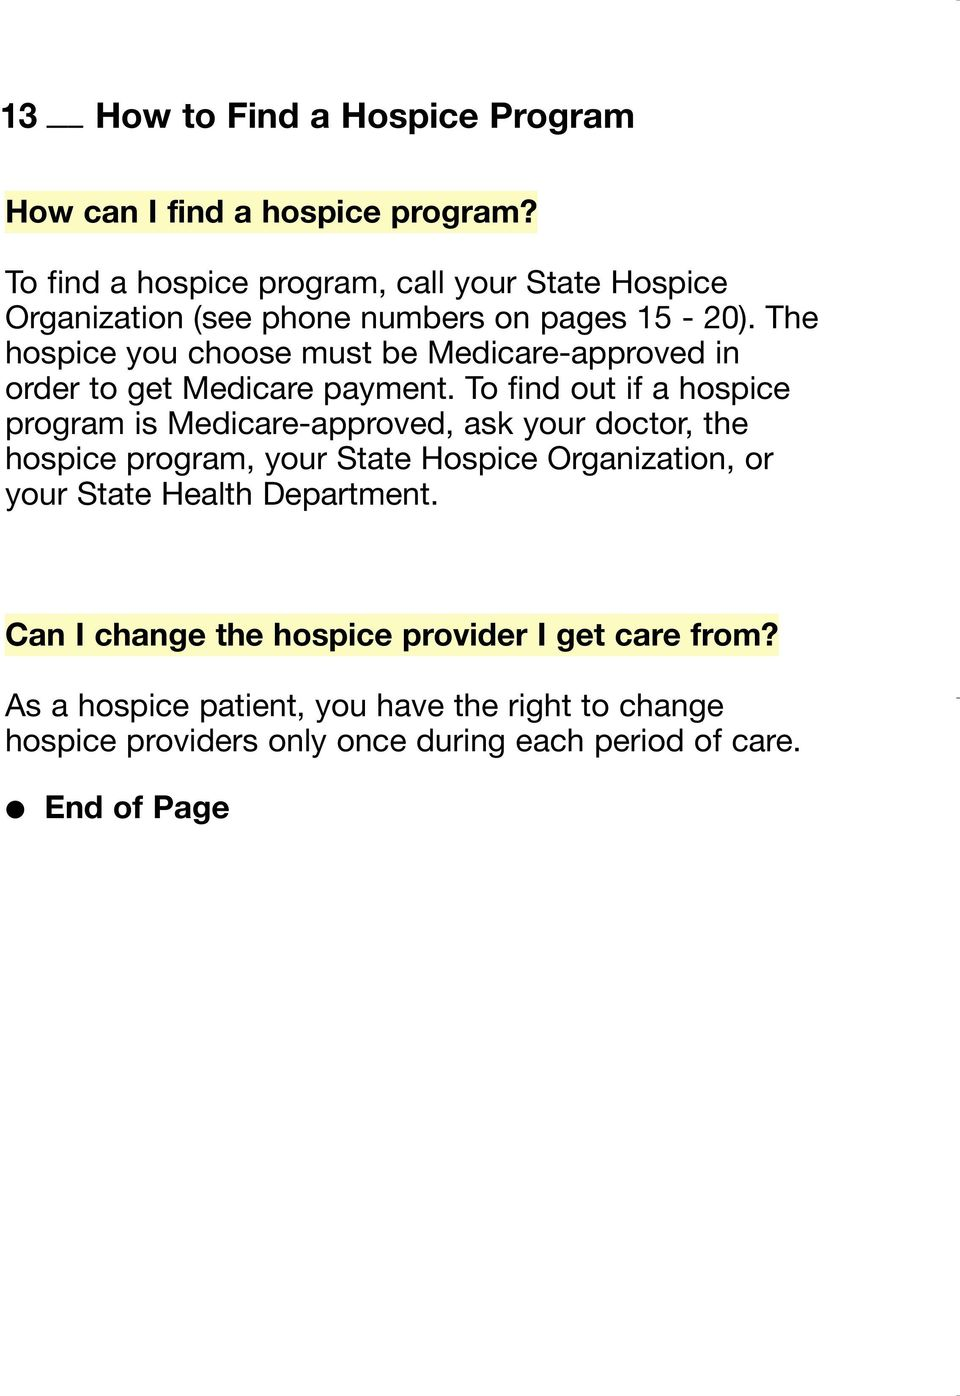 The hospice you choose must be Medicare-approved in order to get Medicare payment.